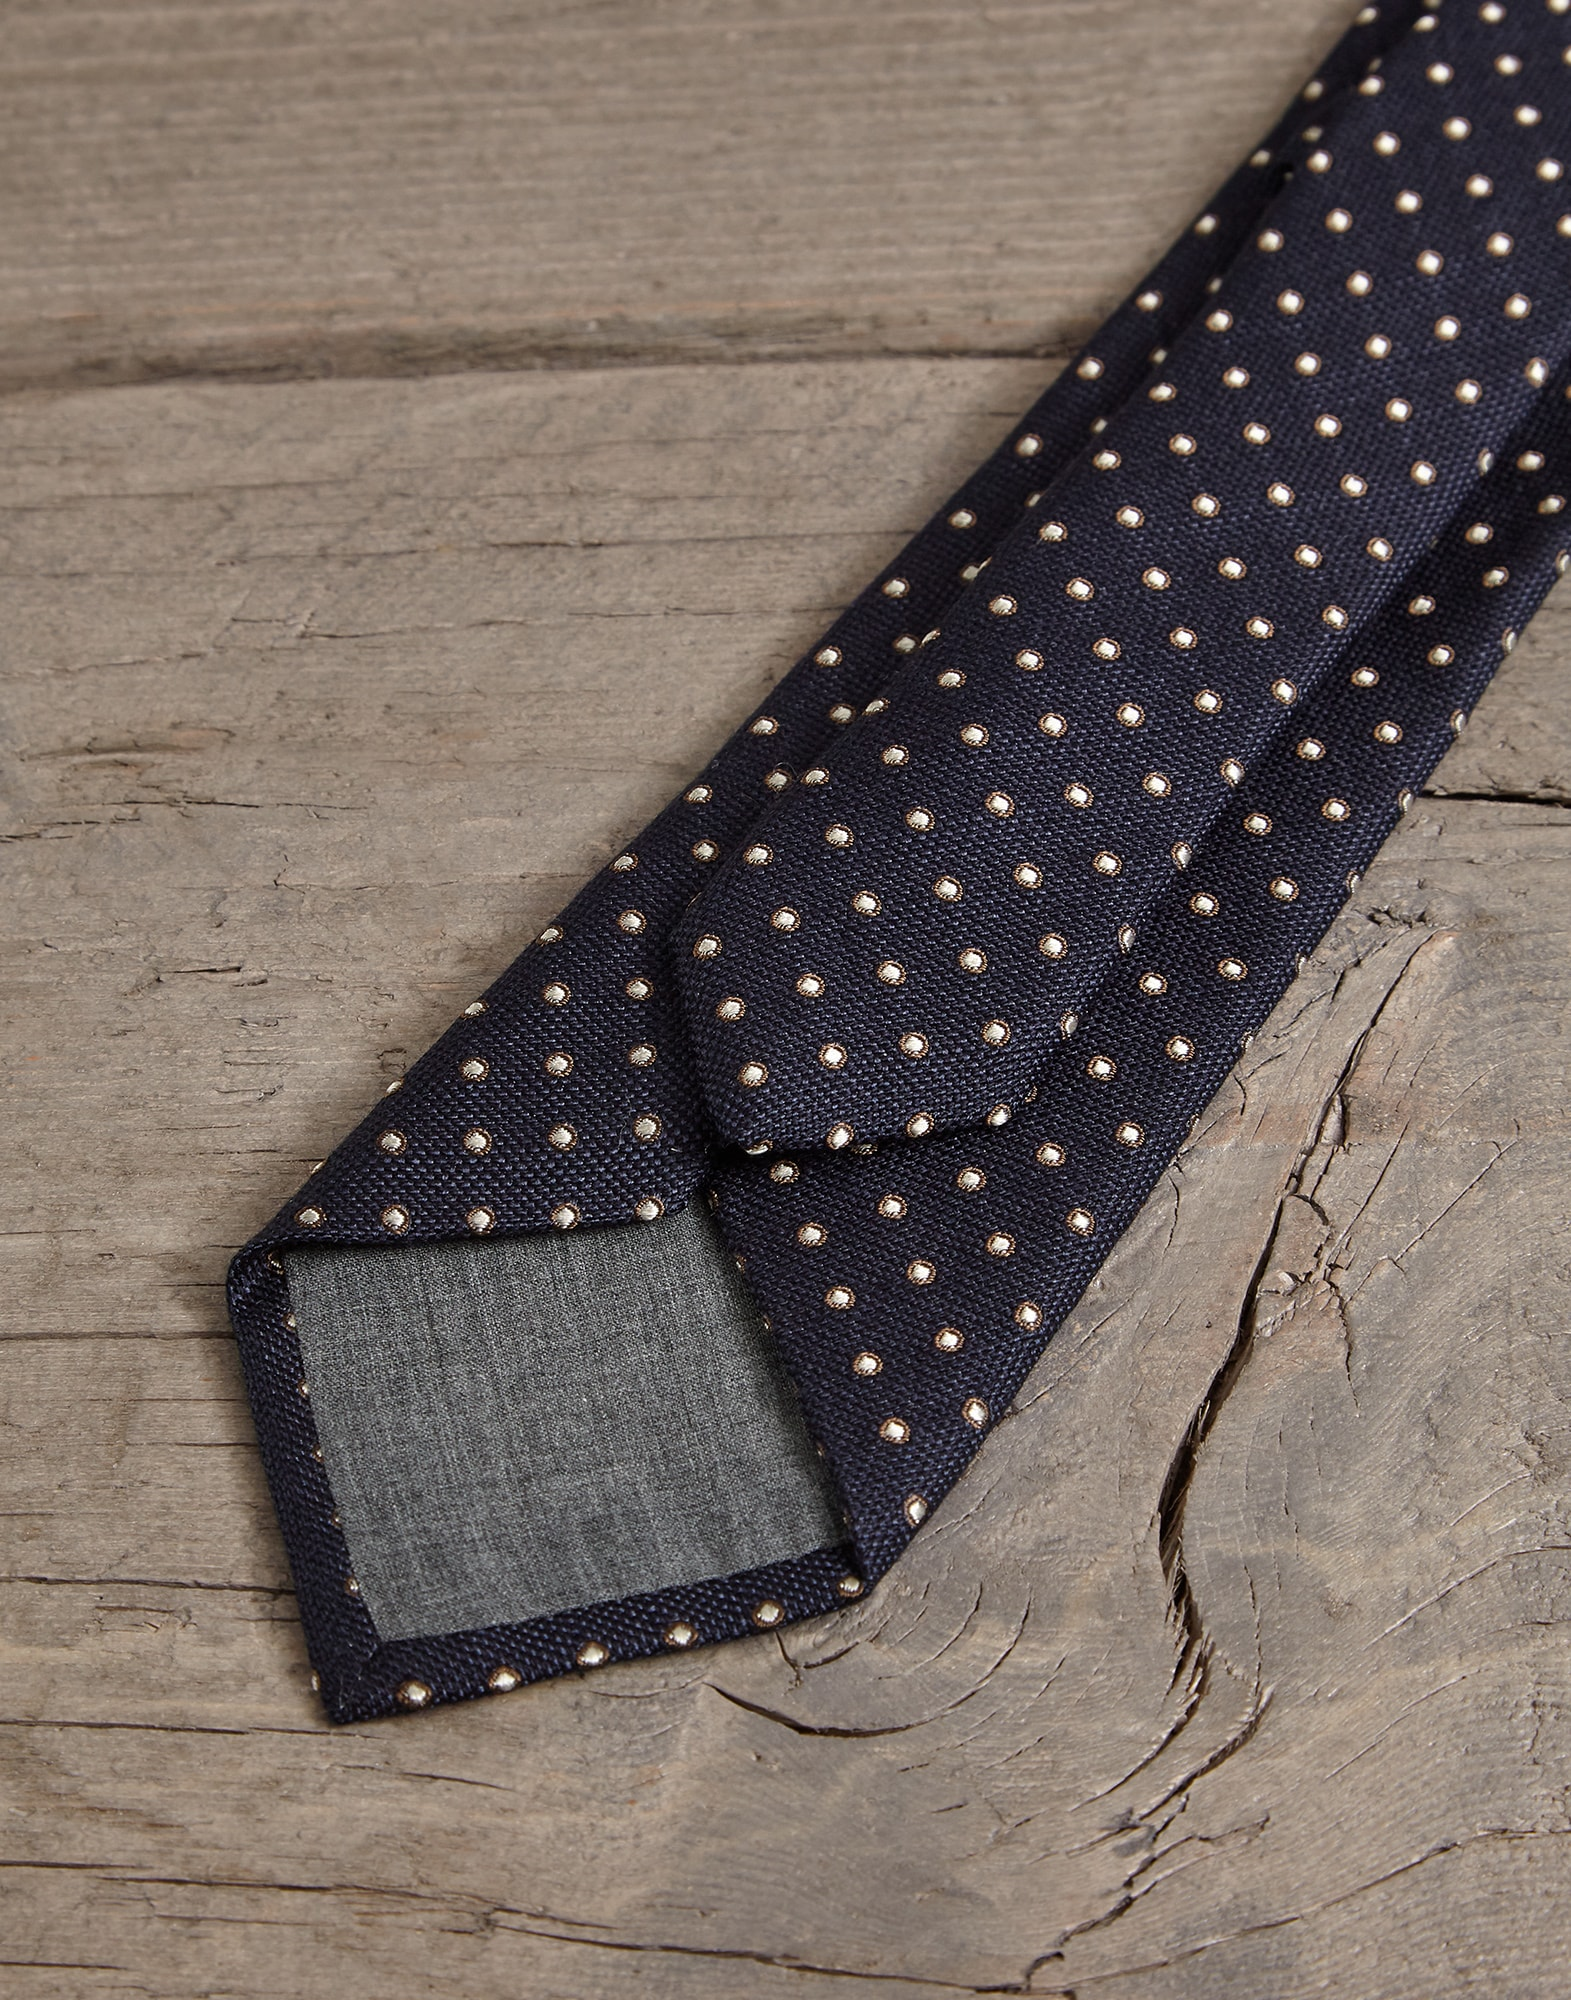 Tie Navy Blue Man 2 - Brunello Cucinelli